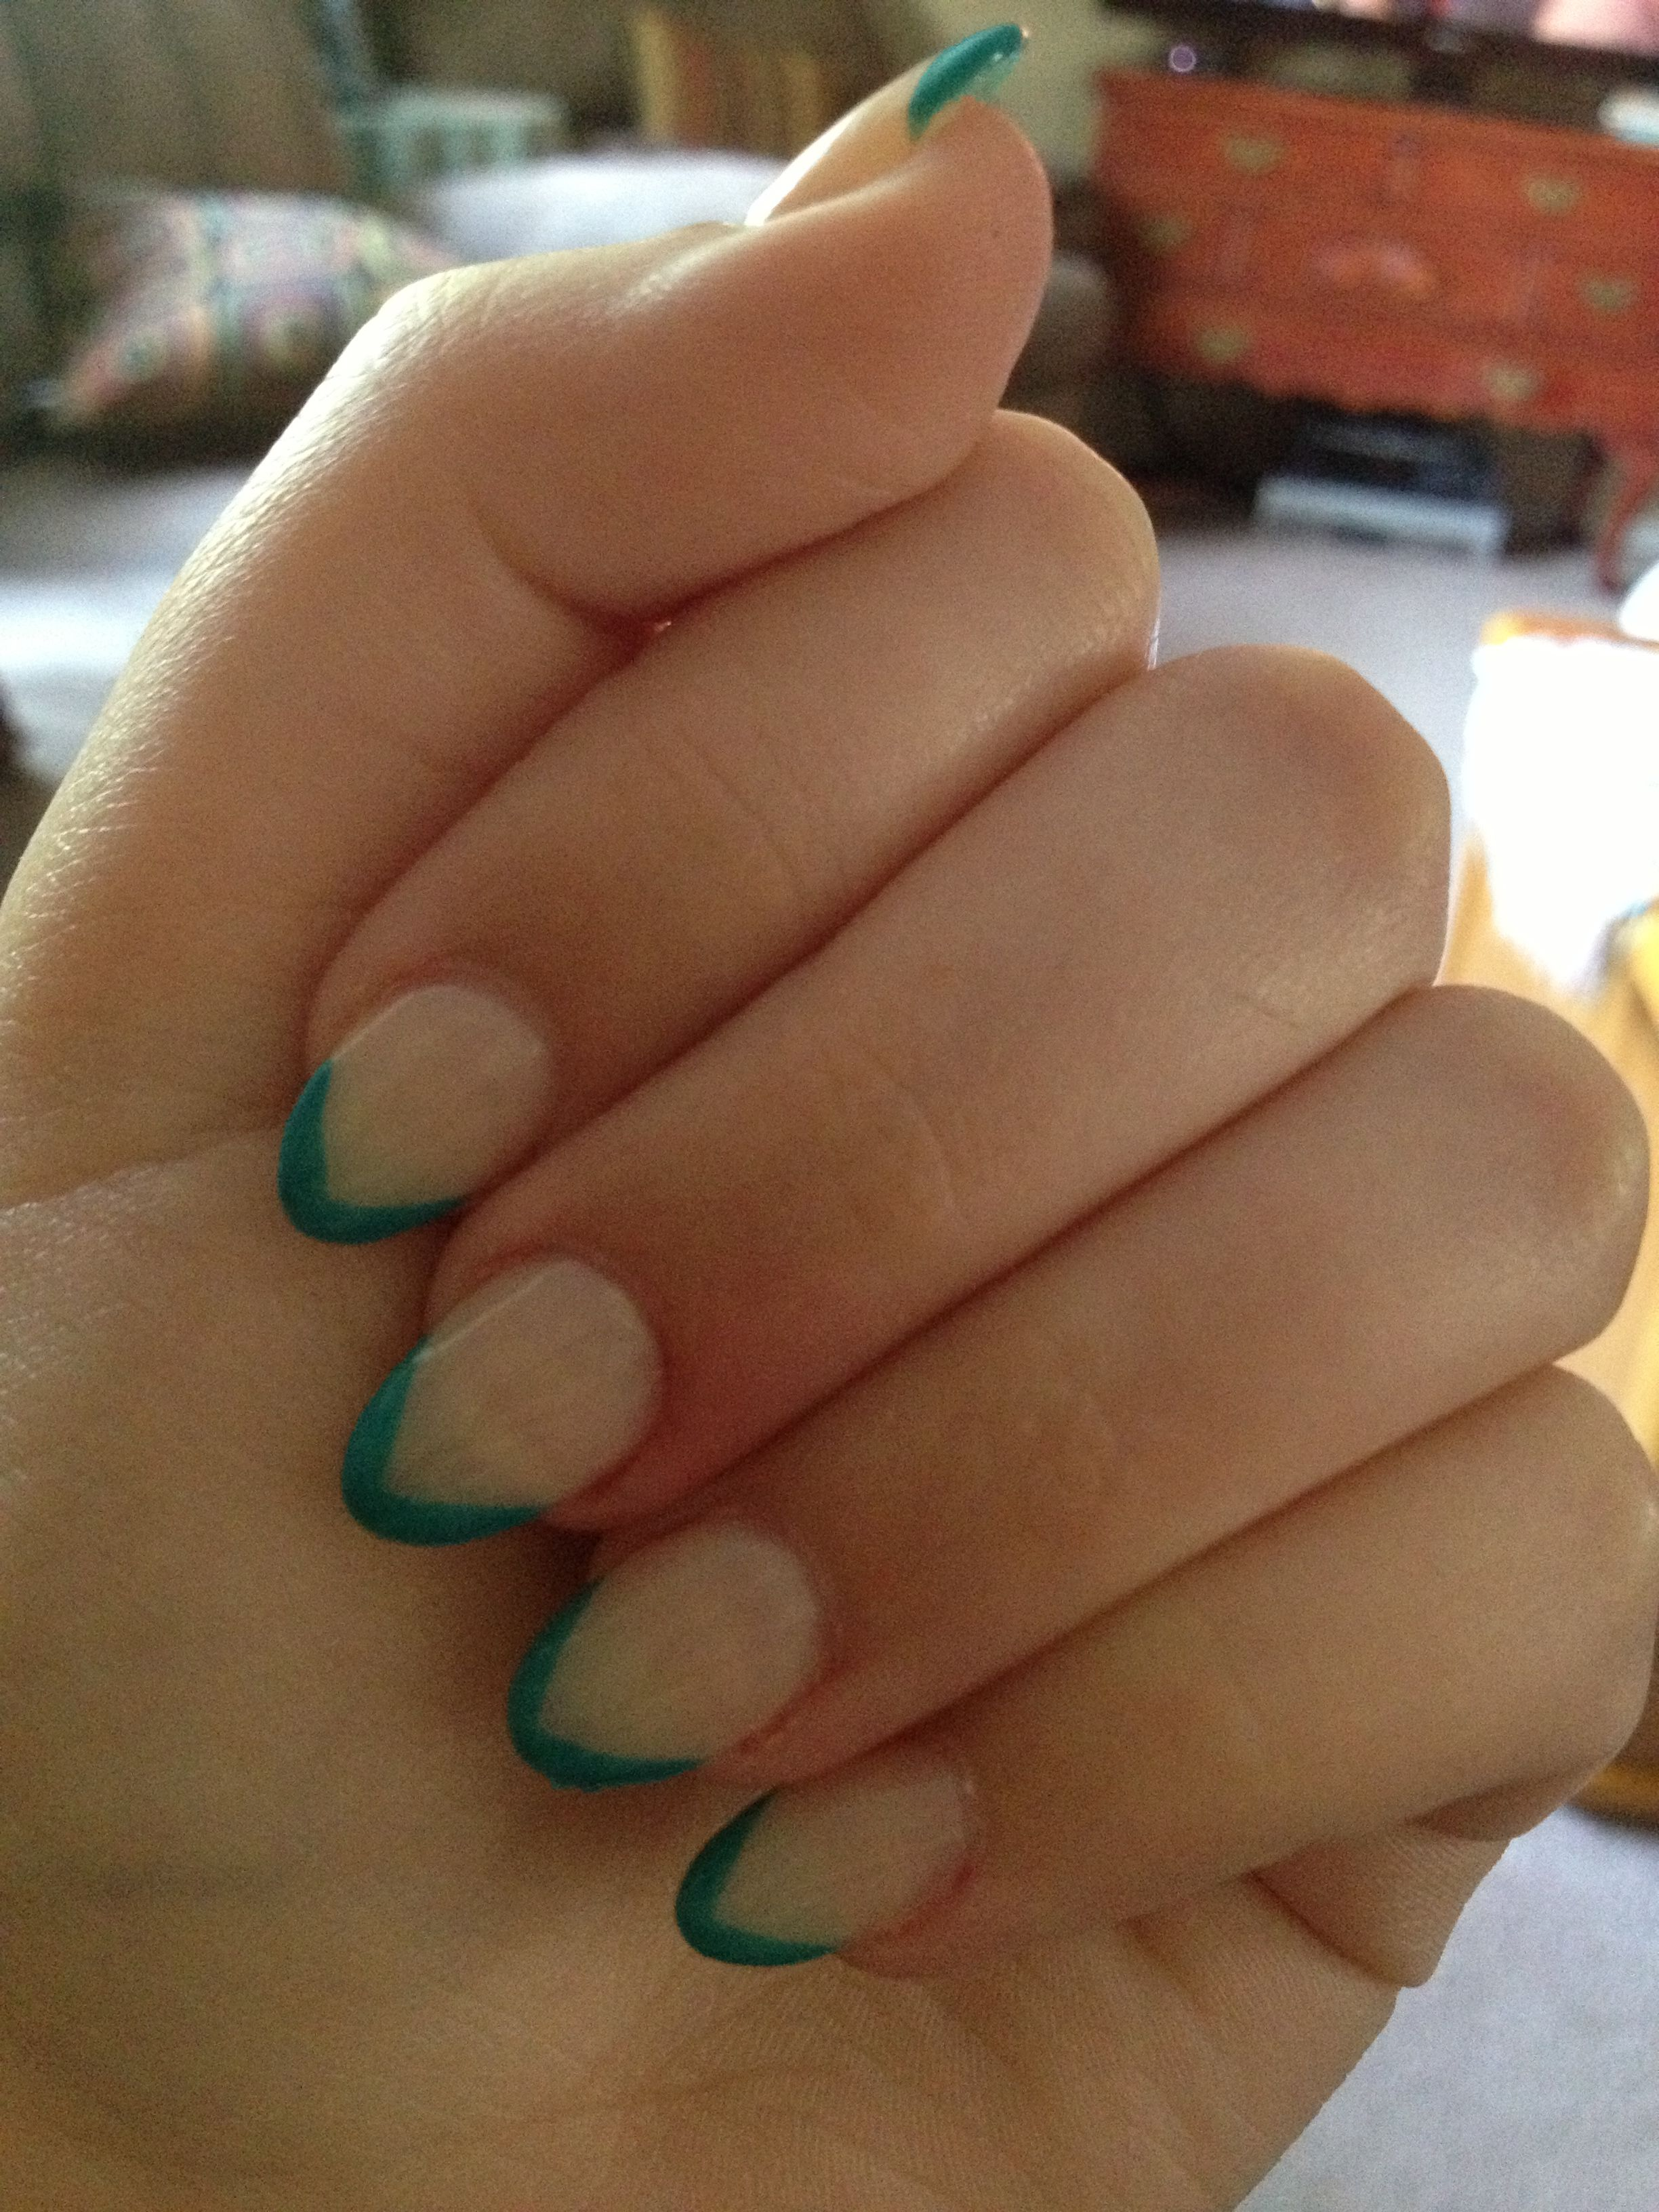 Almond shaped nails with teal v-shaped tips and nude base. Love this ...